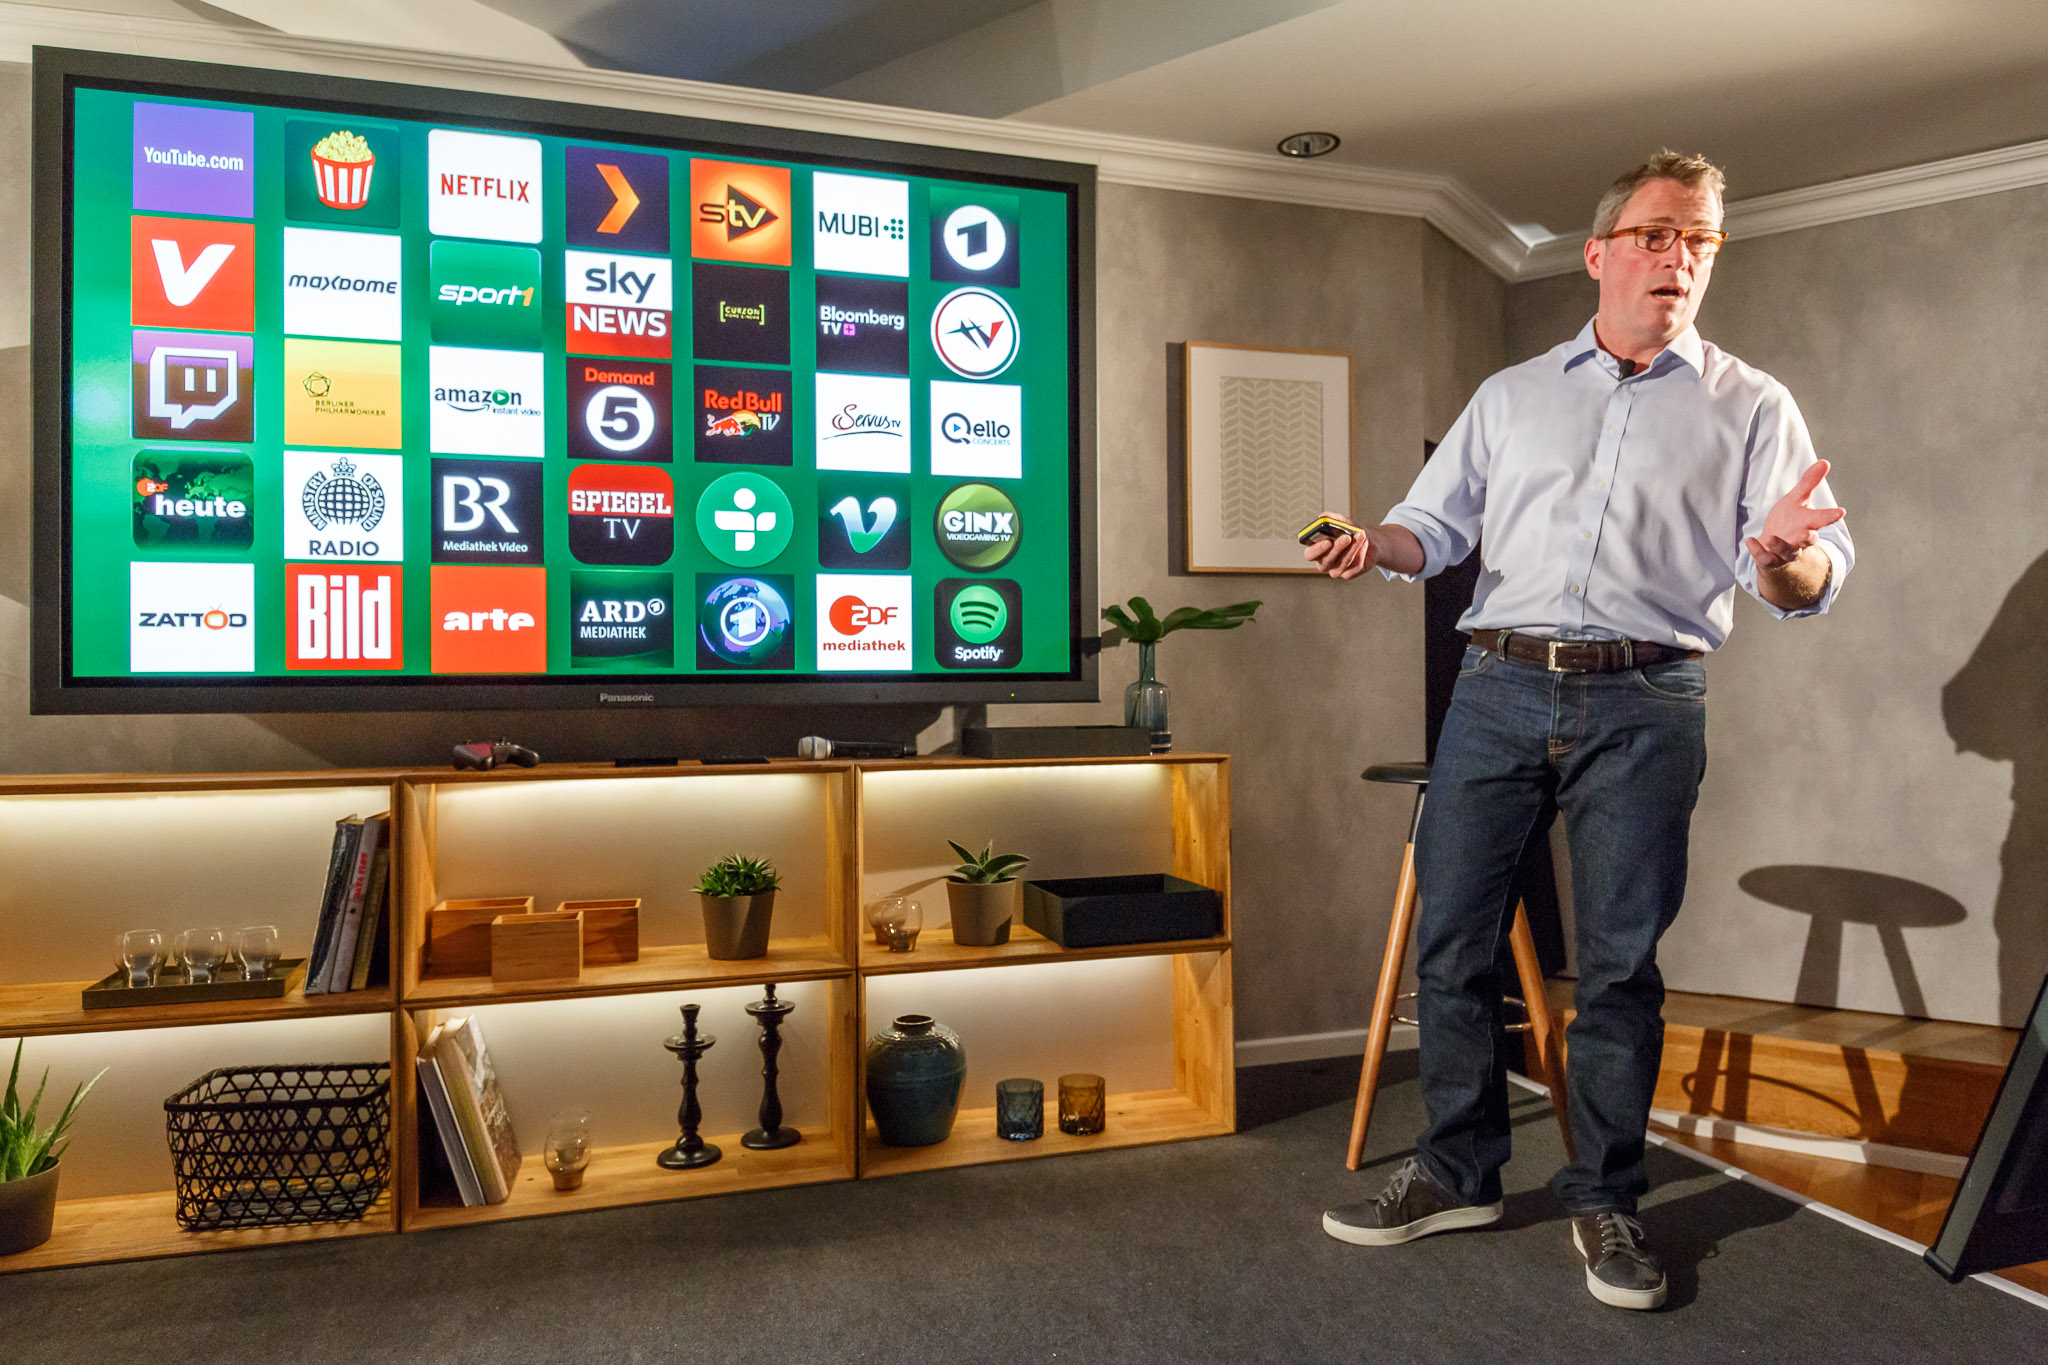 Amazon's Vice President Peter Larsen shows content partners for its Fire TV streaming-media device during the IFA electronics show.